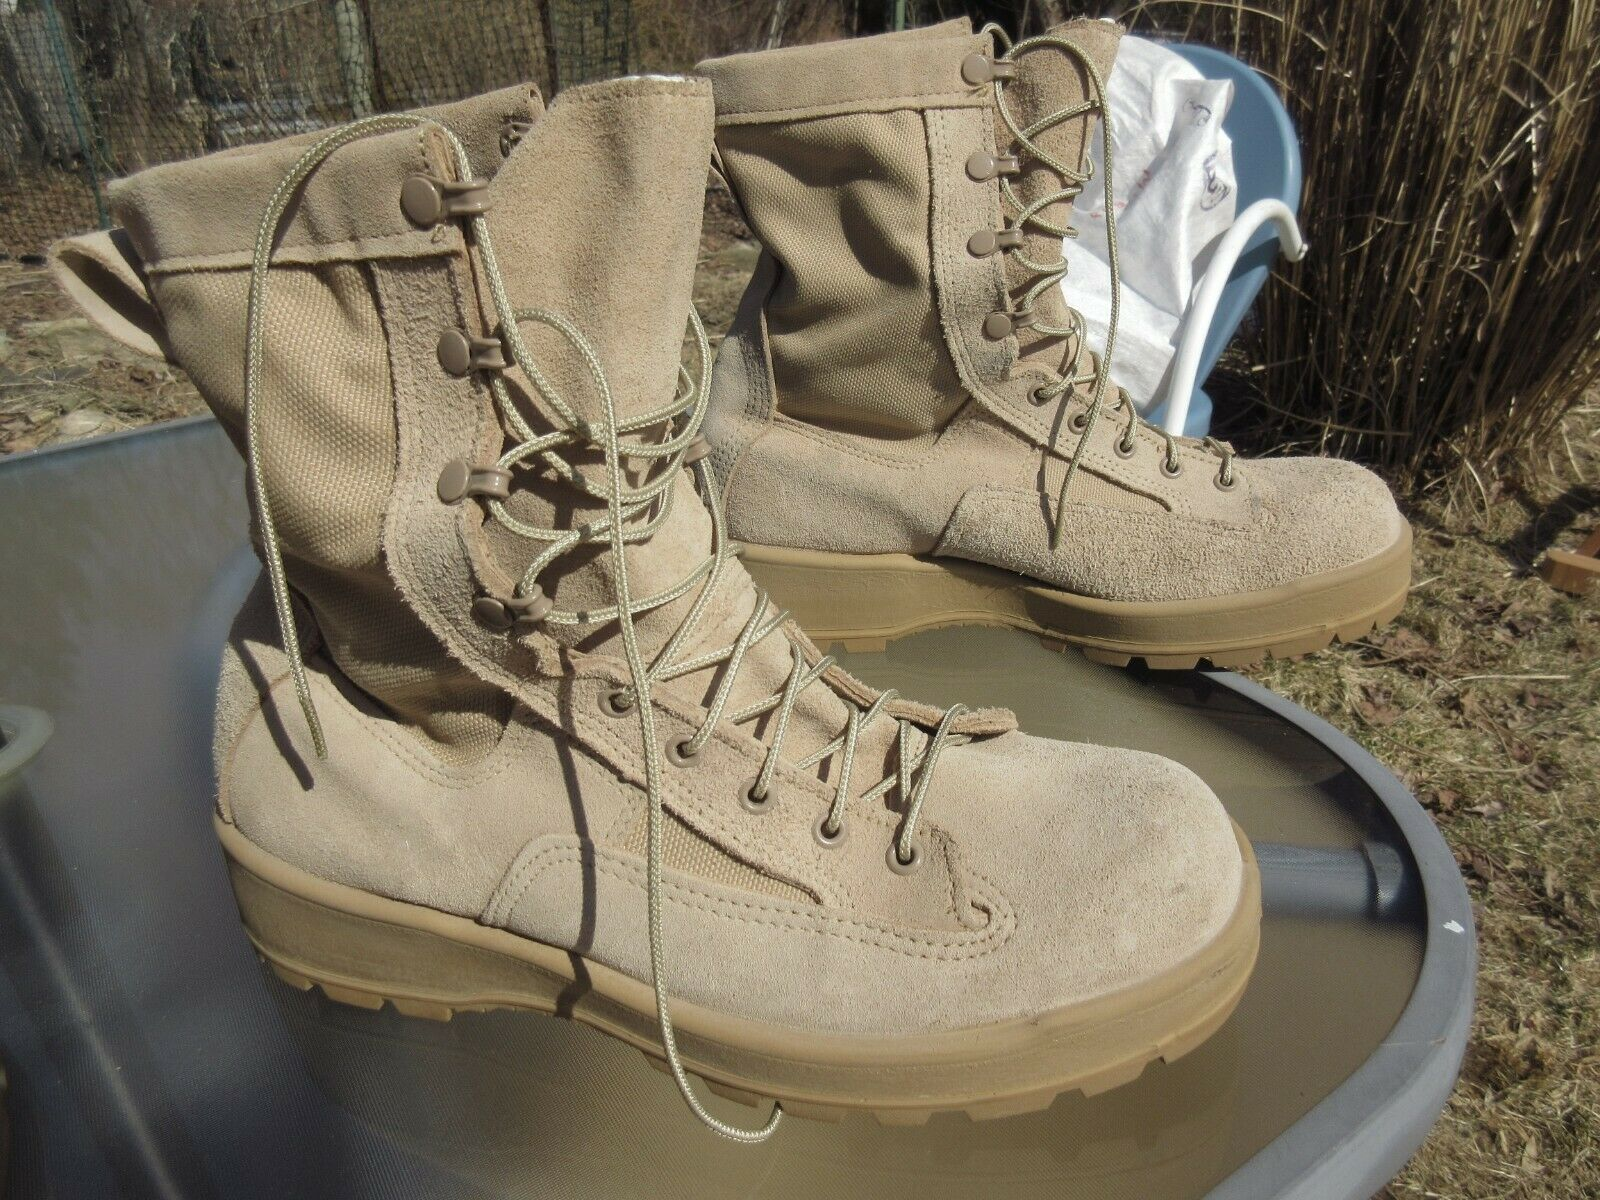 Wellco Leather and Nylon Combat Boots Soft Toe / Waterproof / 10.0 W / Pre-owned